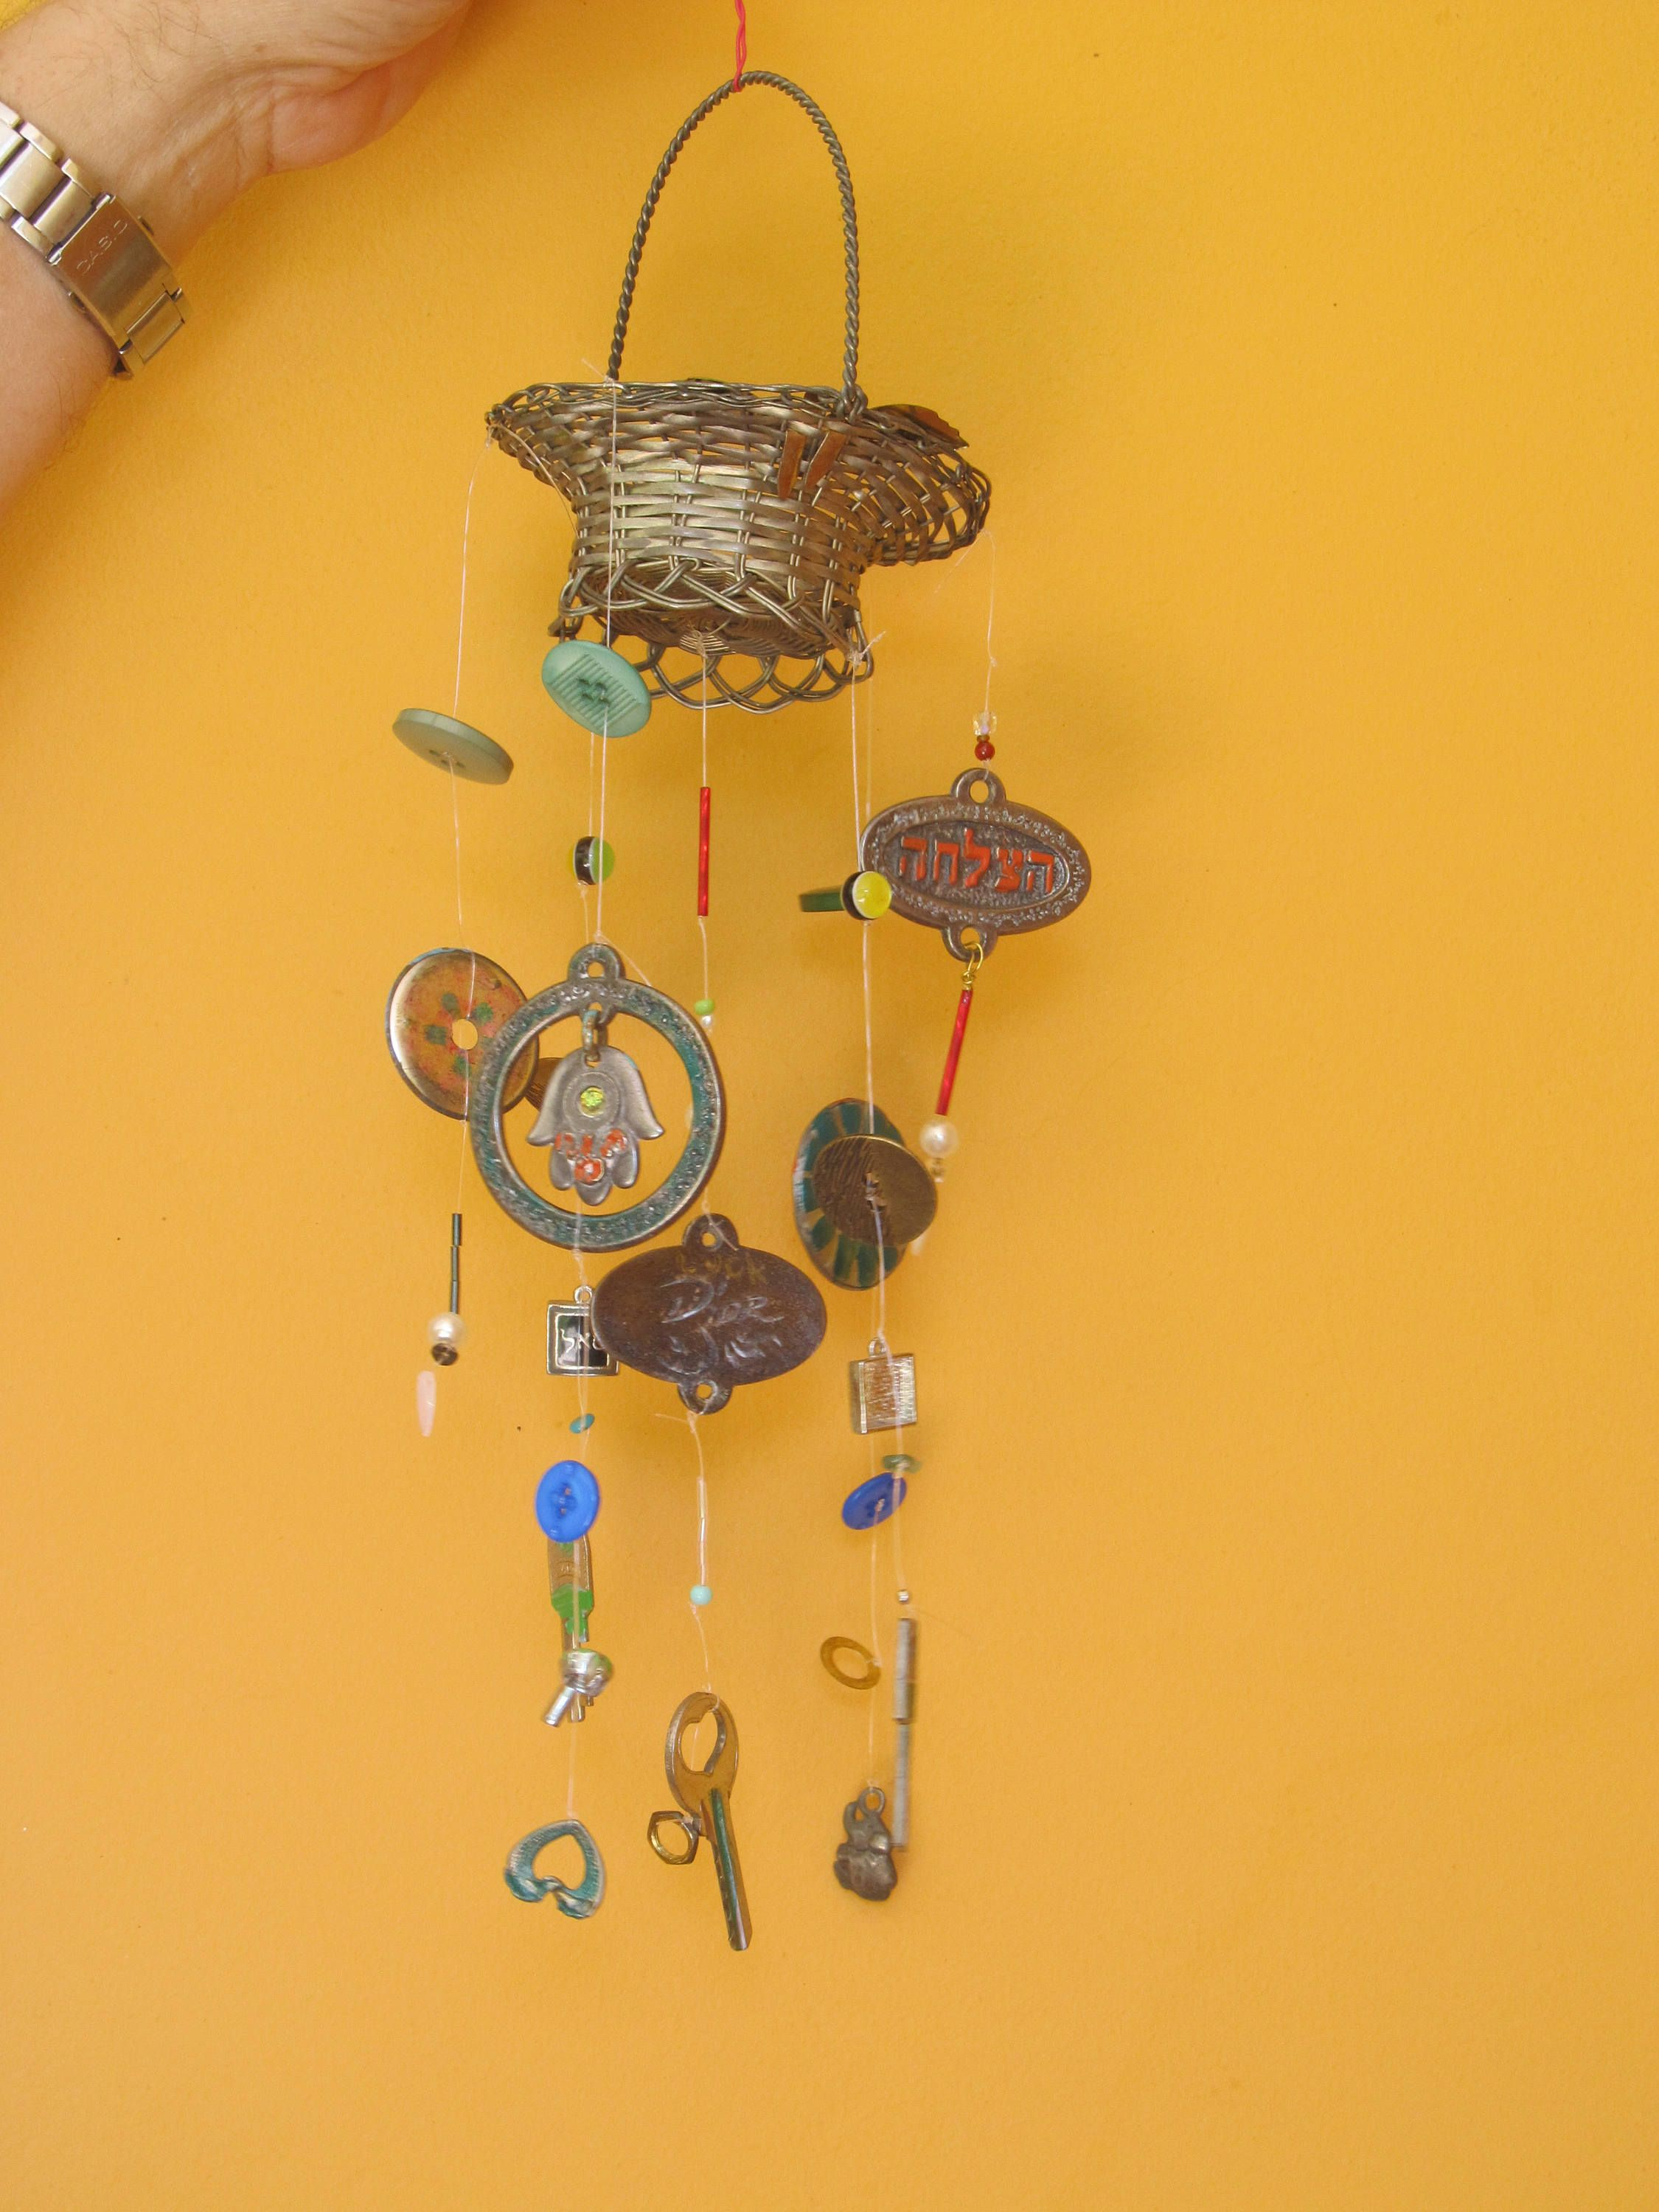 Wind Chime With Metal Basket. Small Recycled Art Hanging Decor ...